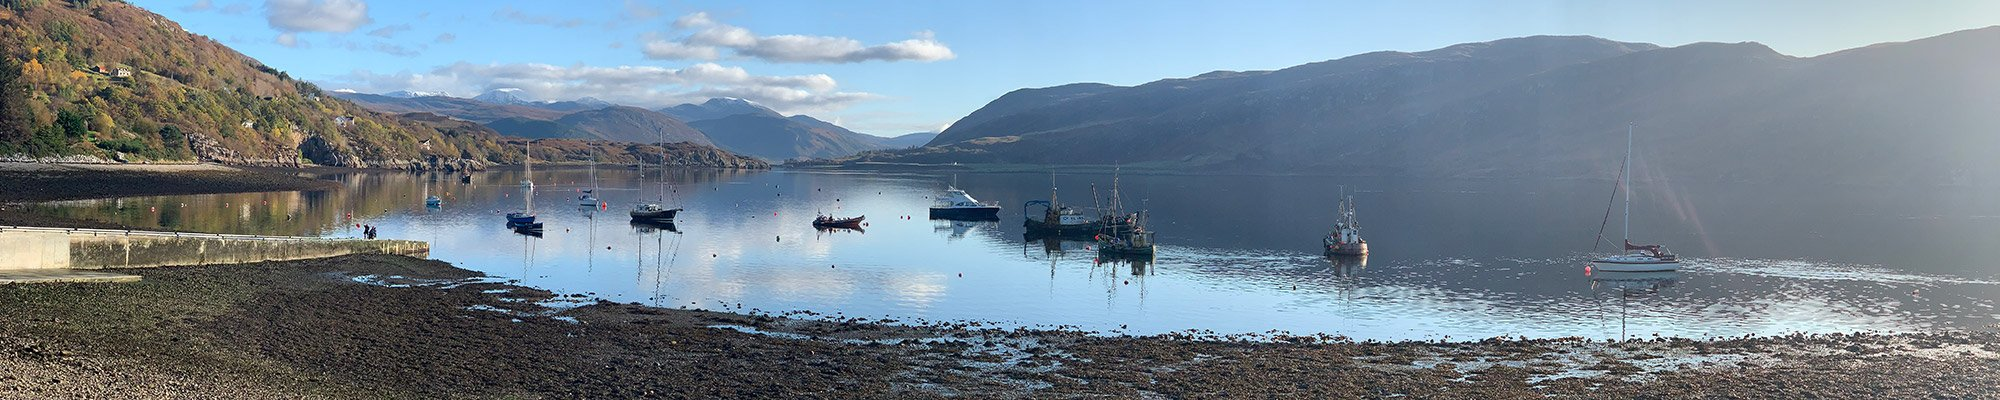 Loch Broom Ullapool